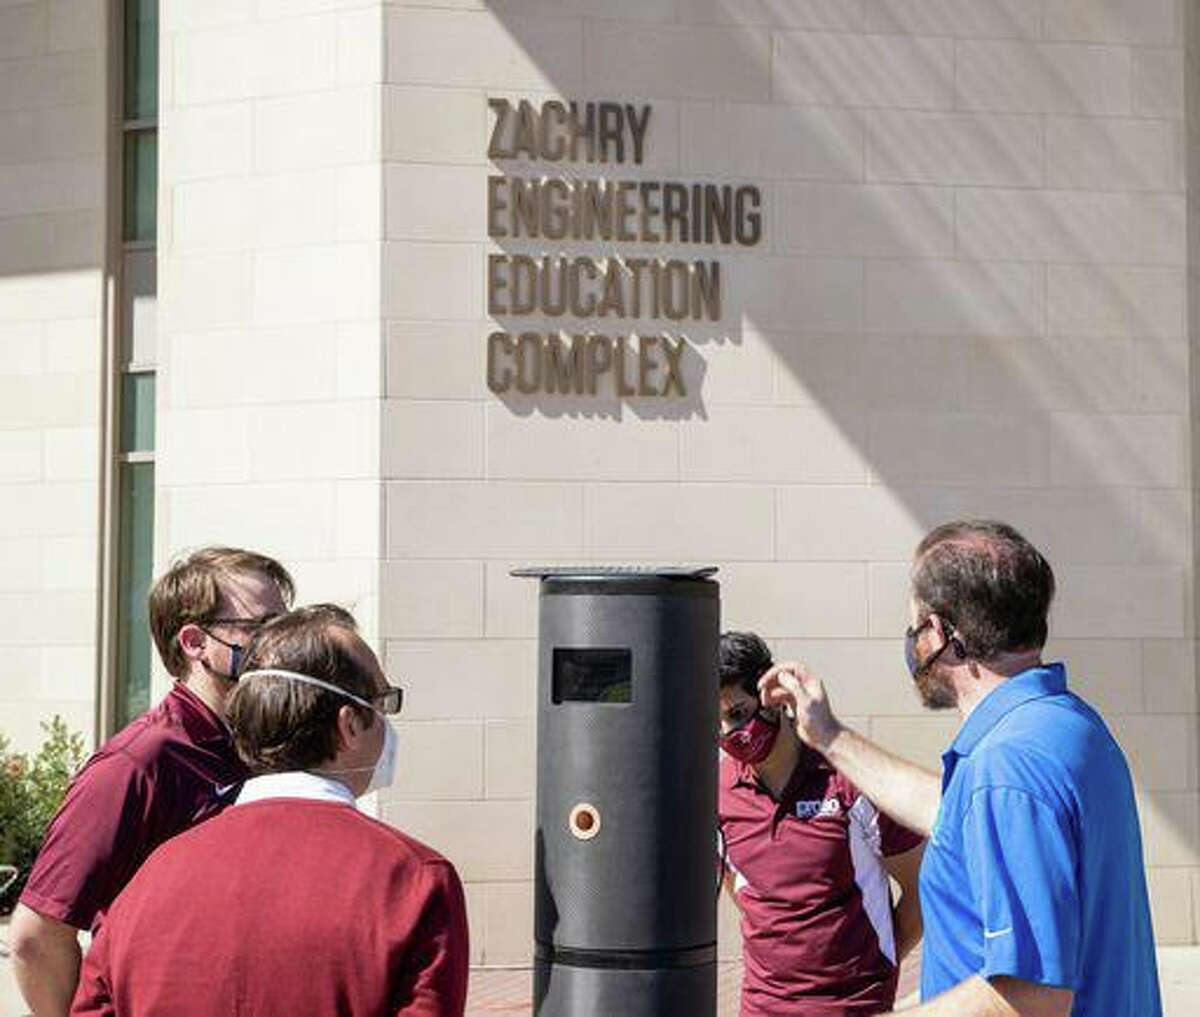 Researchers at Texas A&M University and Worlds Inc., a Dallas-based artificial intelligence company, developed a breathalyzer kiosk that can detect COVID-19 in 2020.